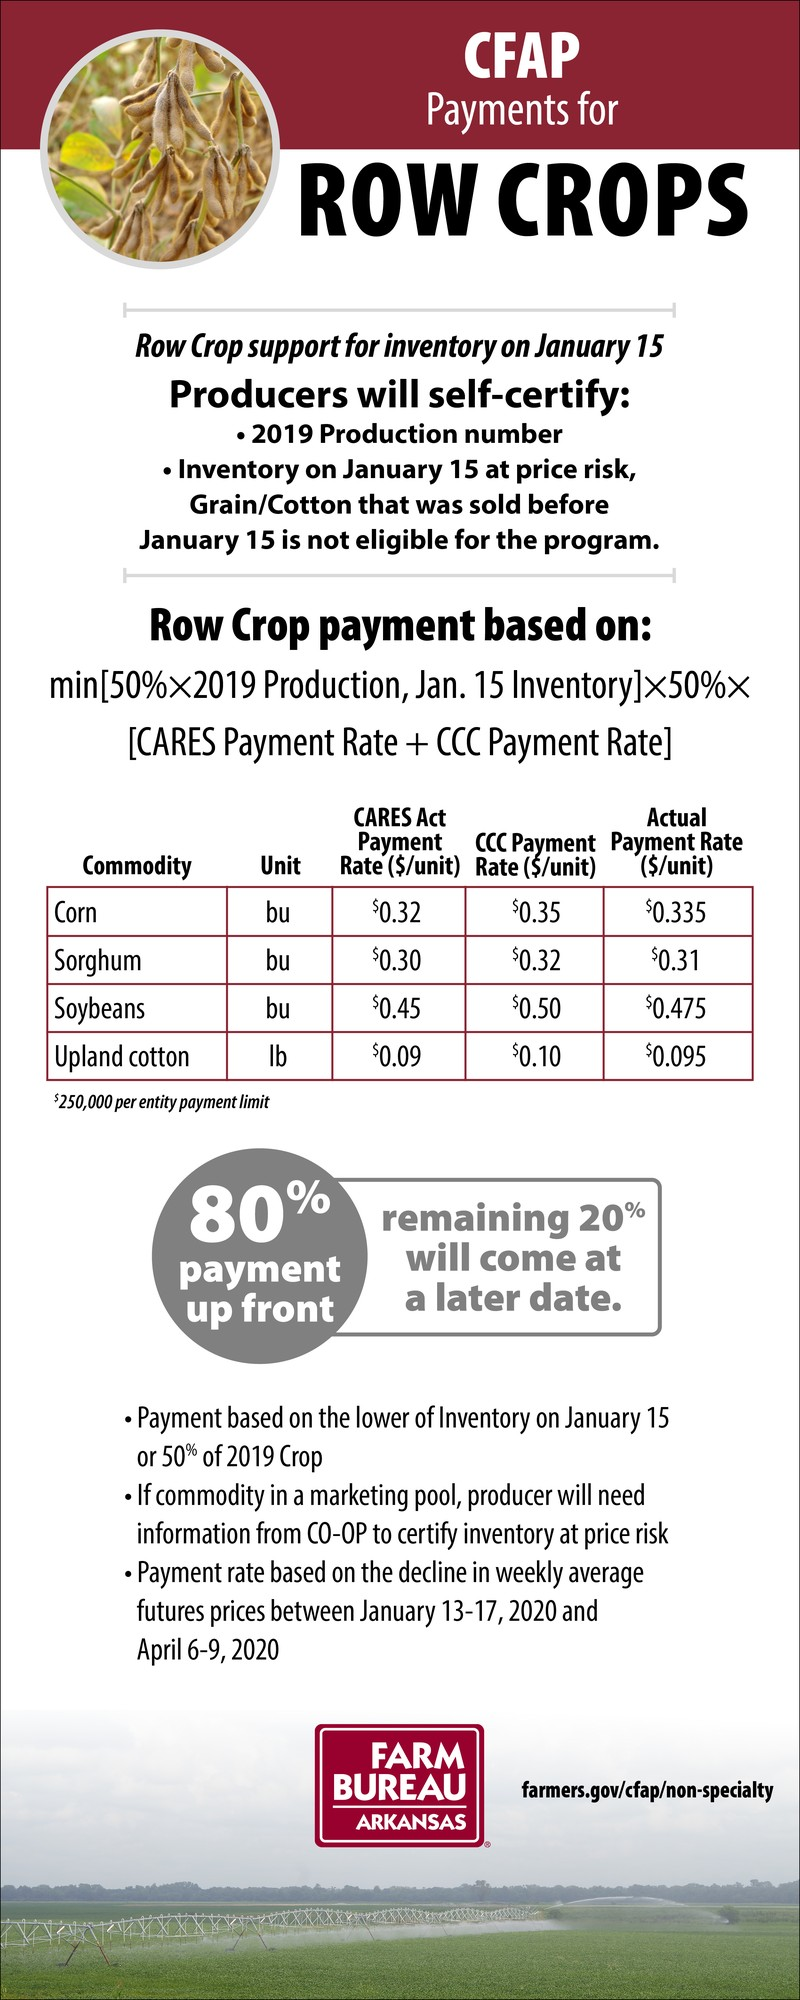 CFAP payments for row crops image